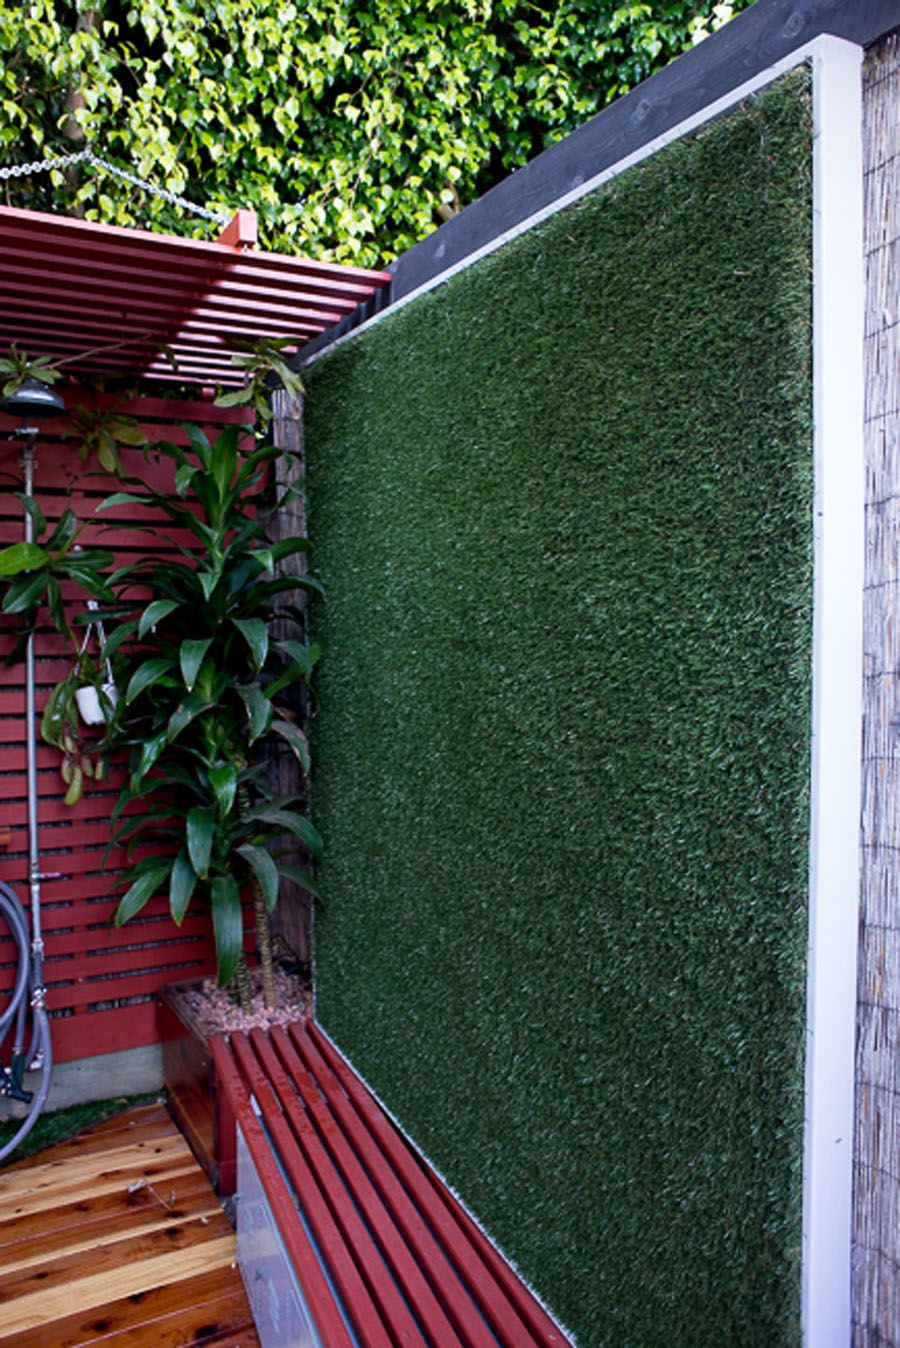 Artificial Turf On A Wall Vertical Lawn Silly And Clever